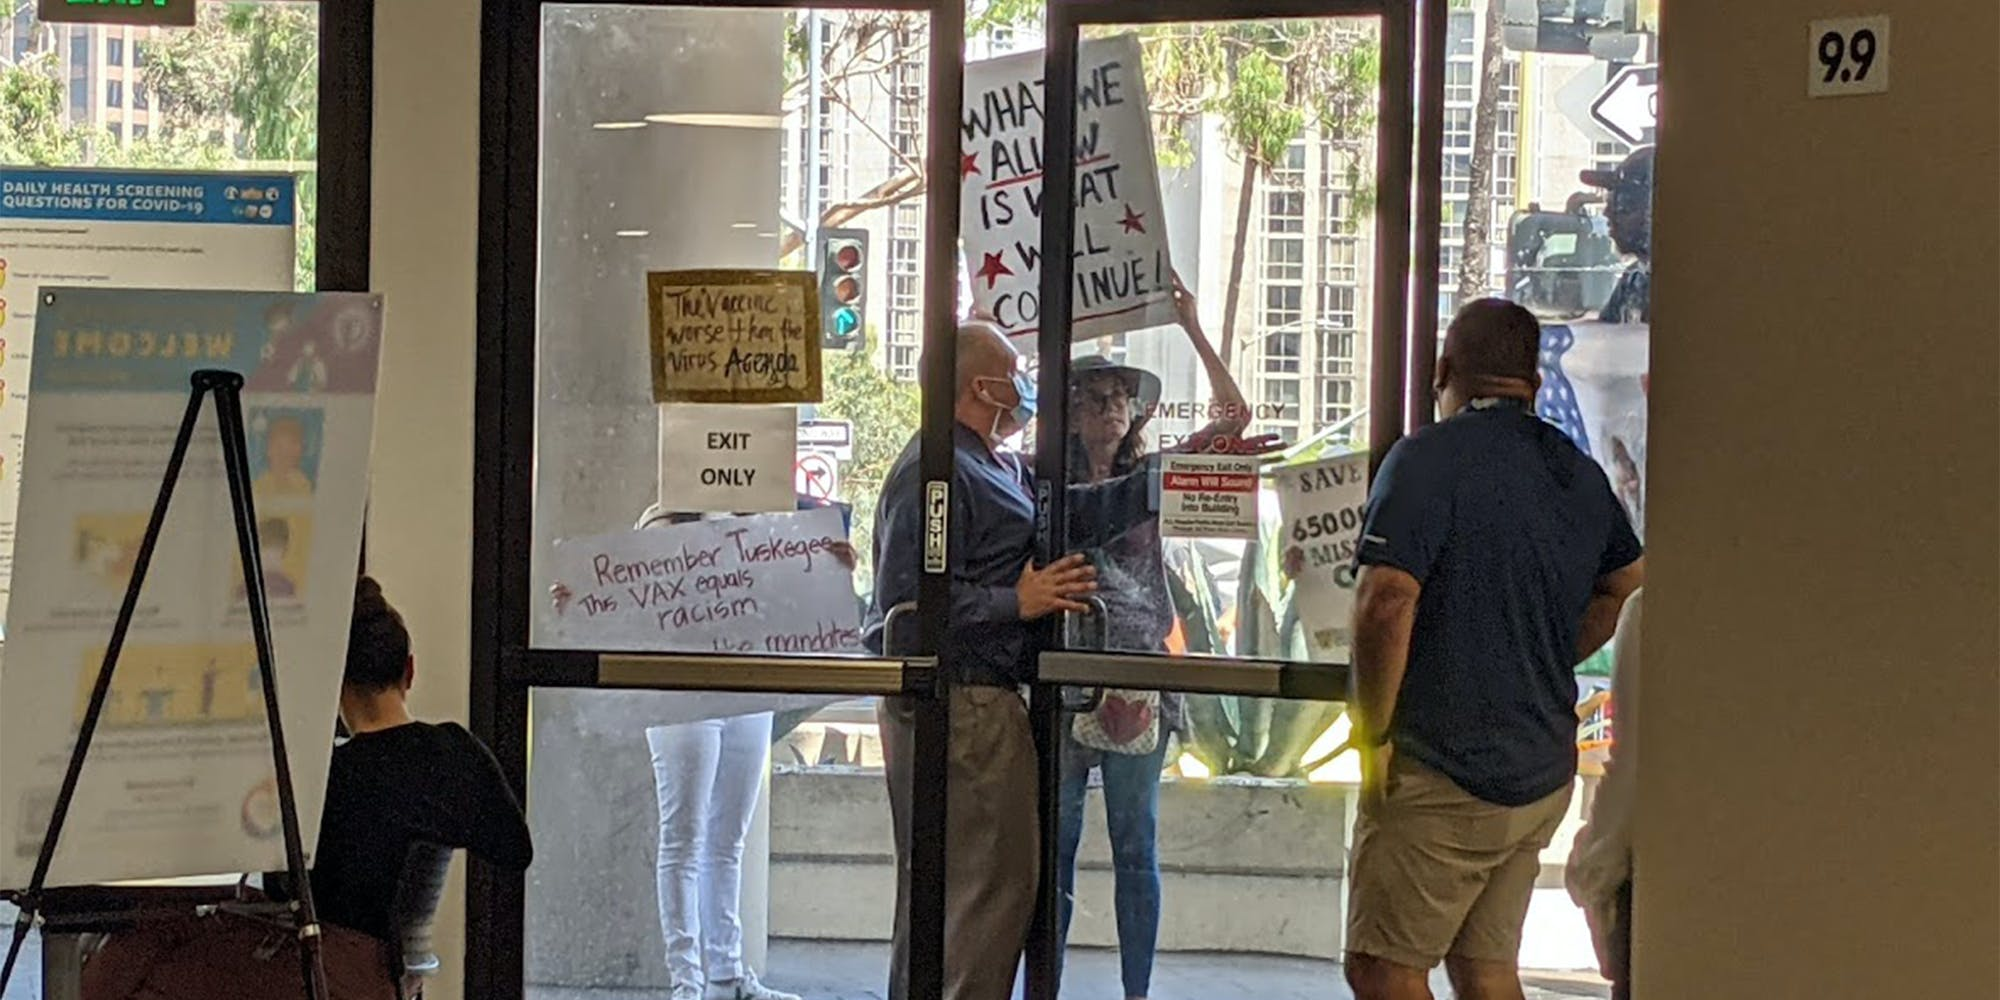 anti-vax protesters outside of glass doors